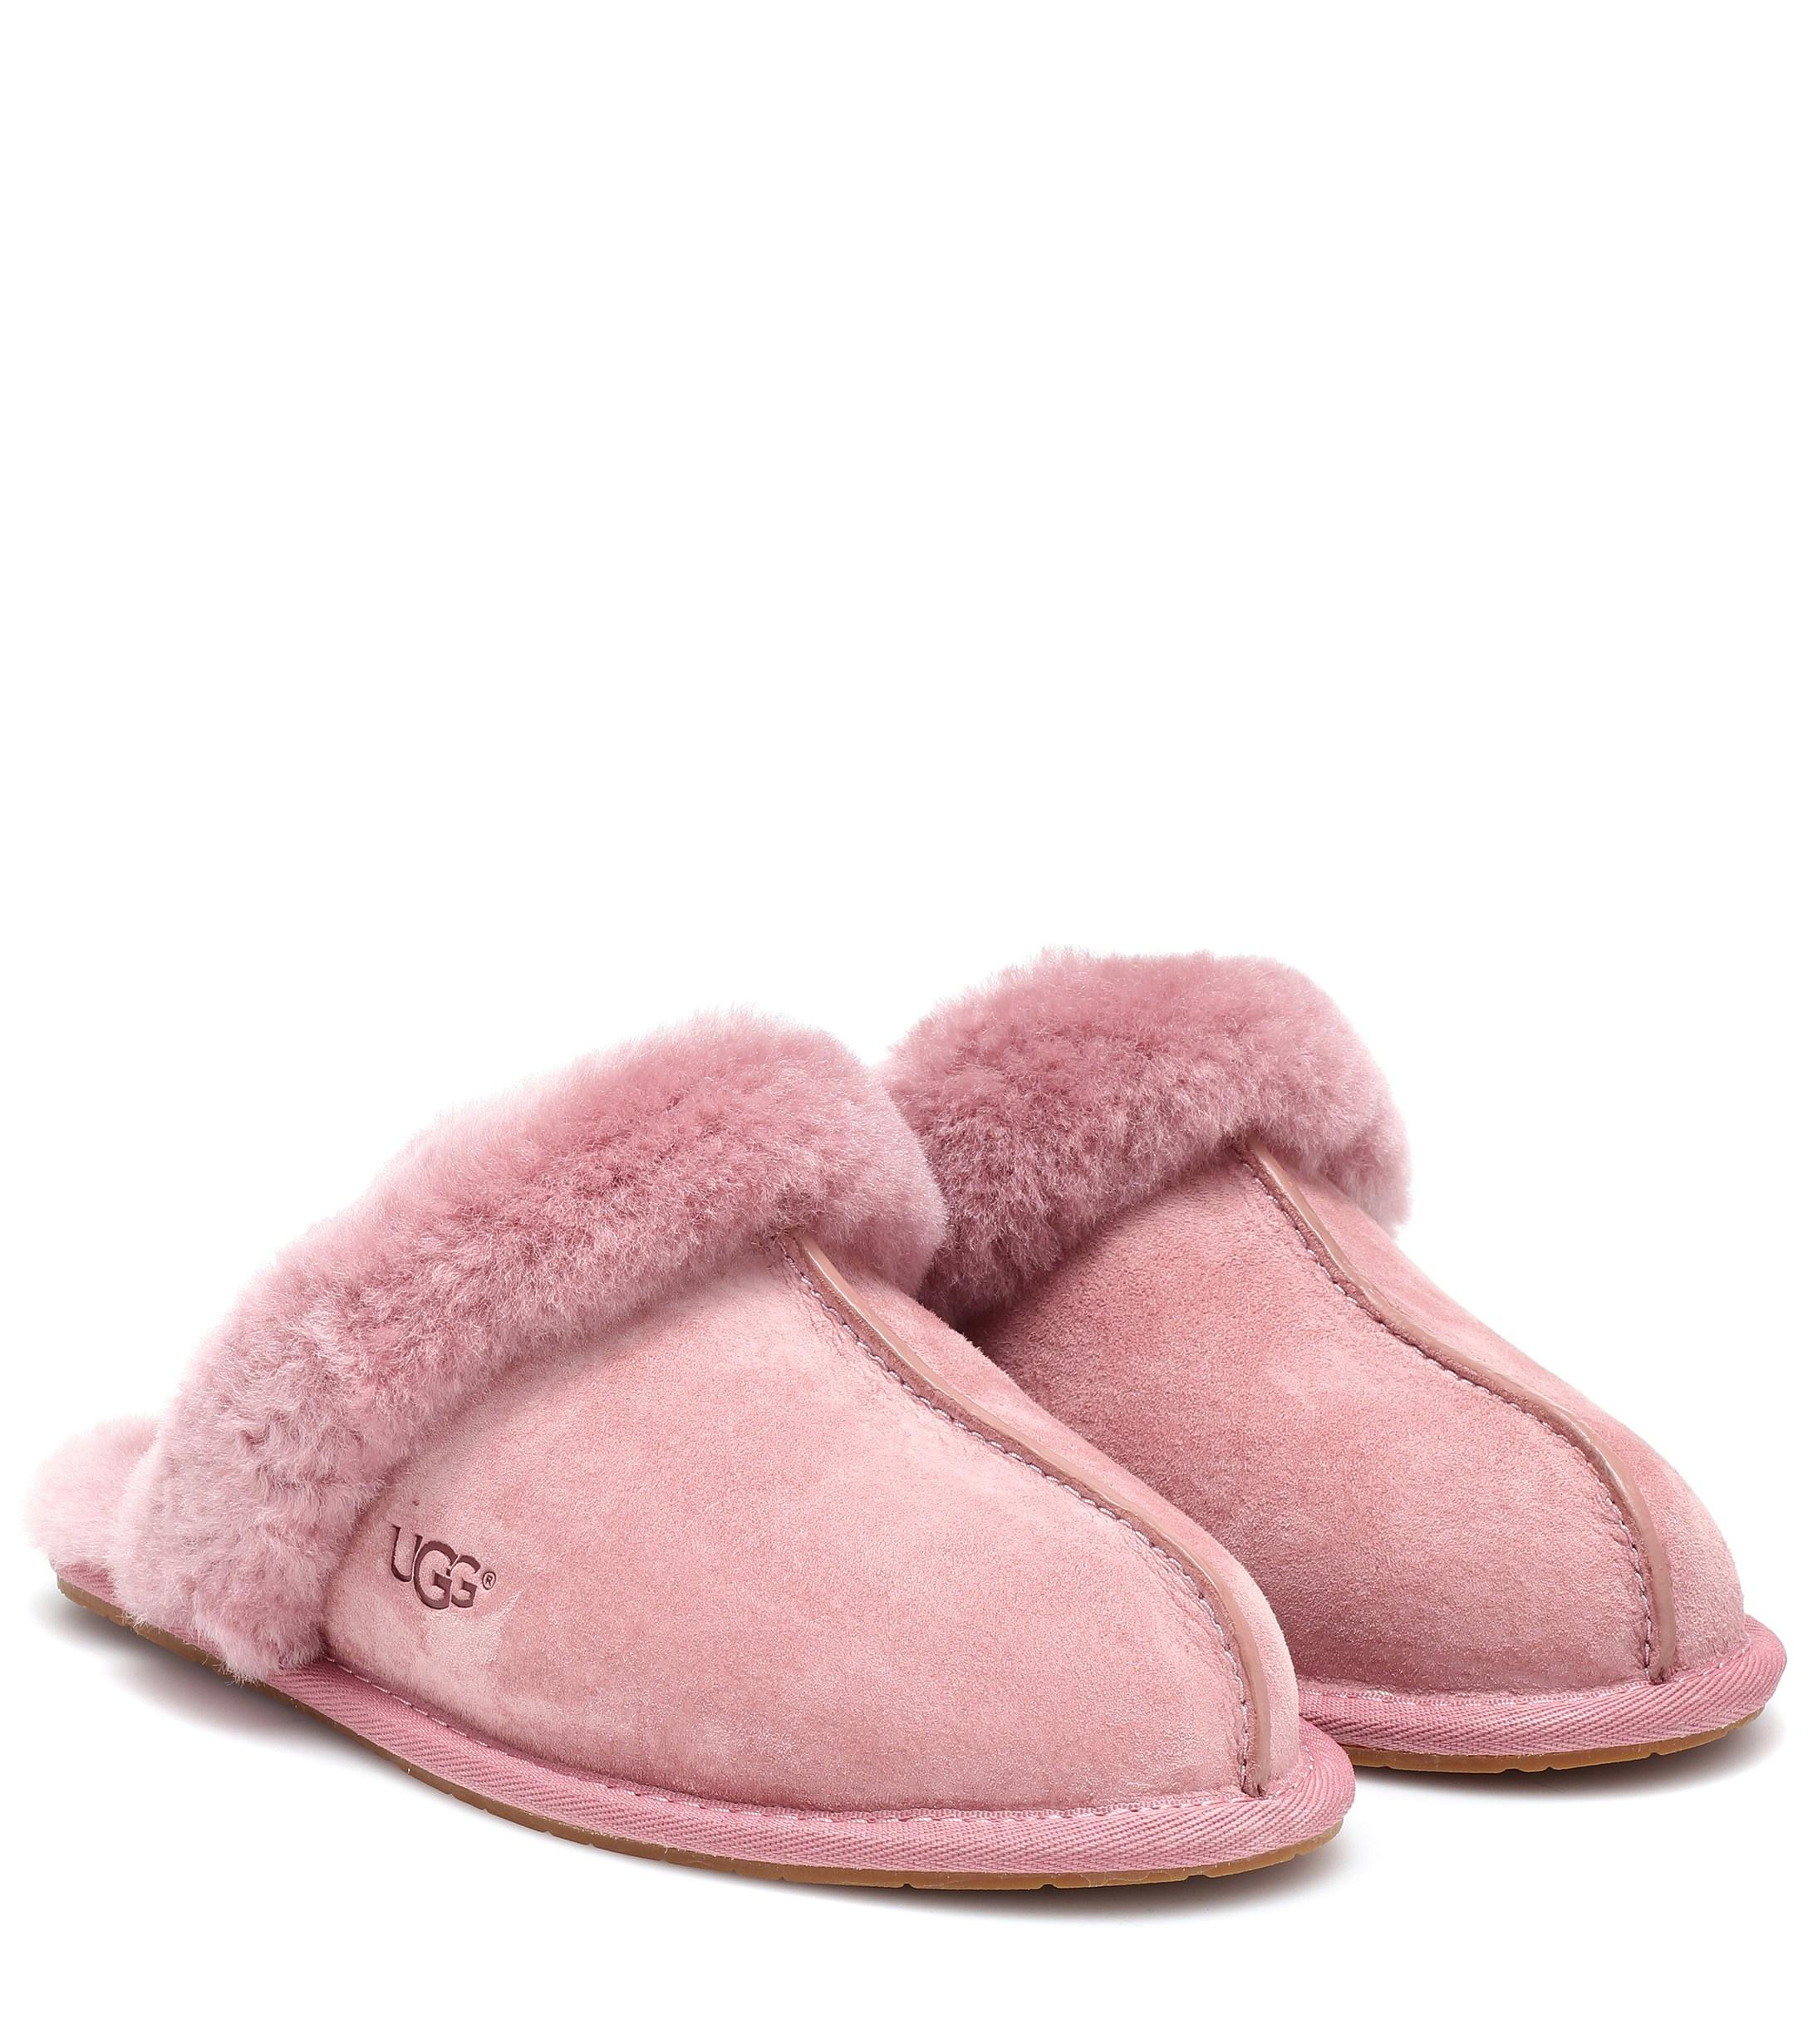 661ceb069a2 UGG Scuffette Ii Suede Slippers in Pink - Lyst